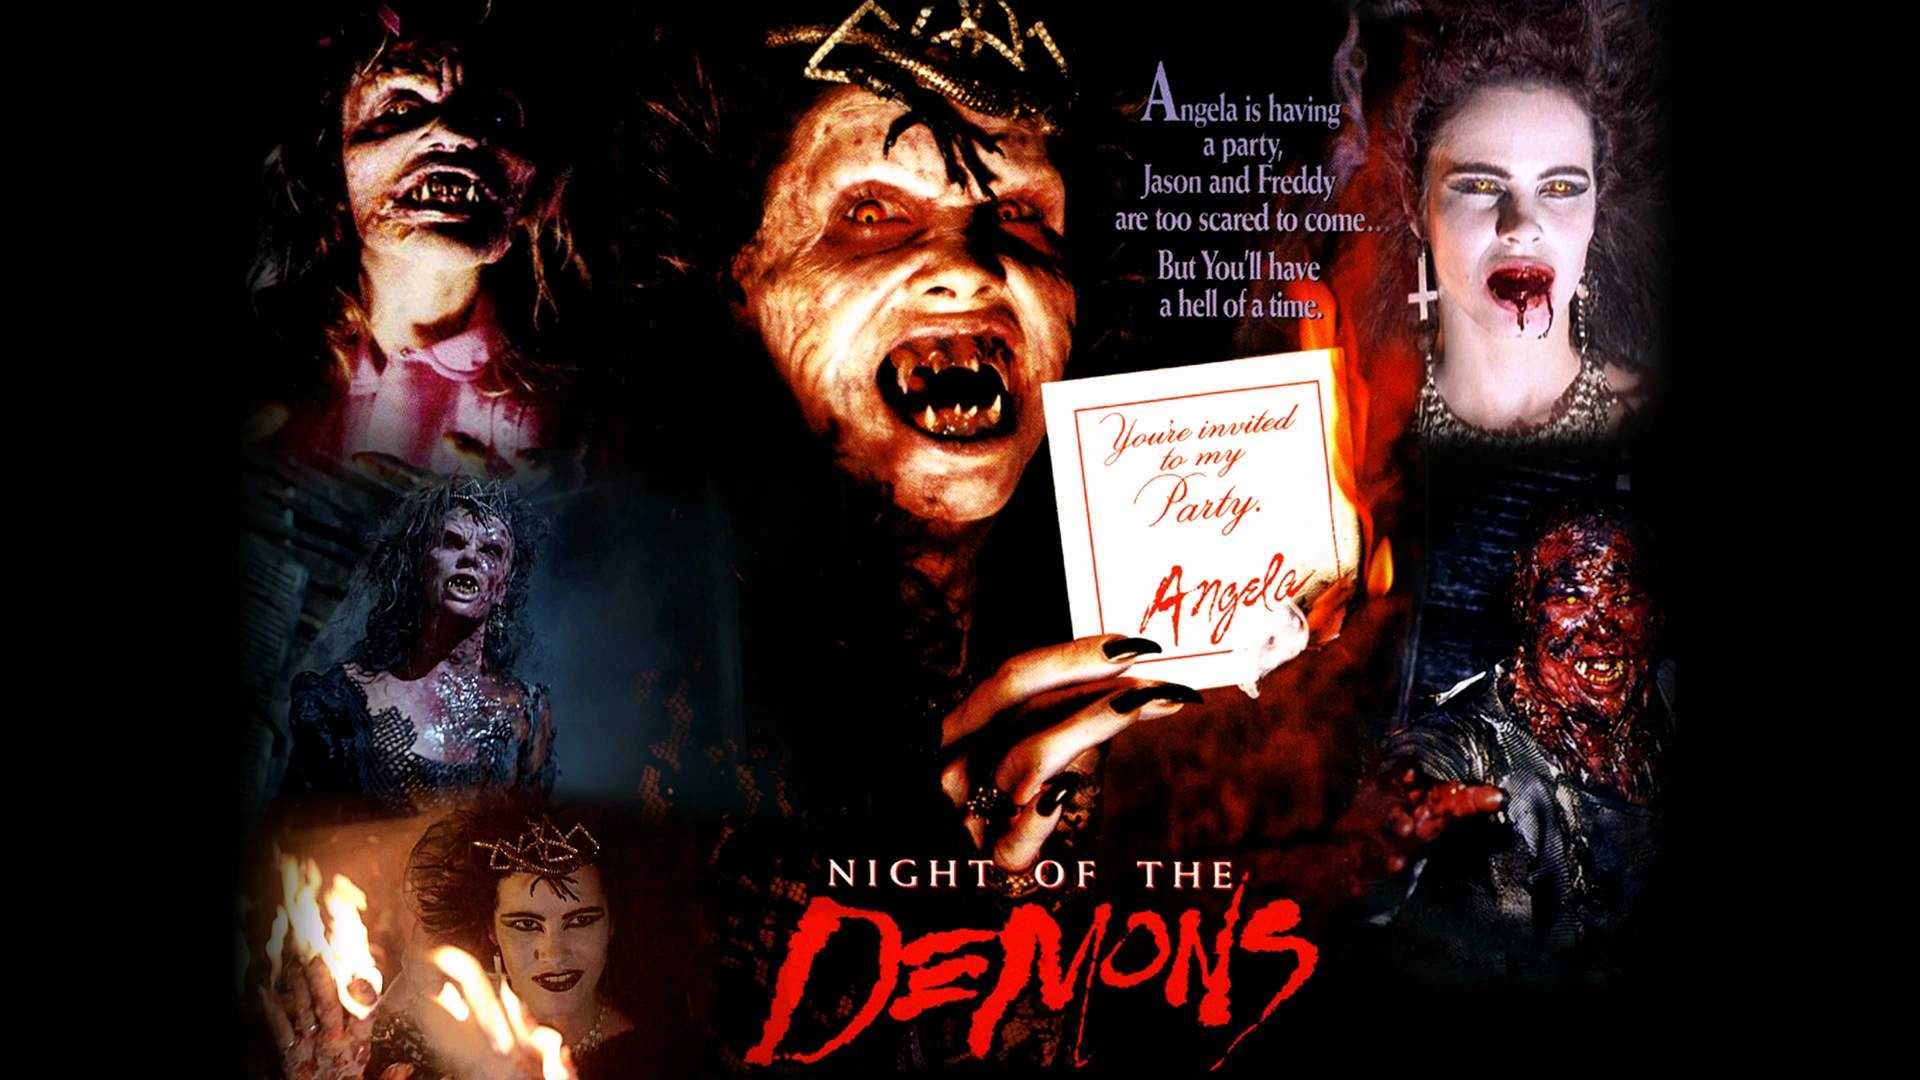 1920x1080 Night of the demons